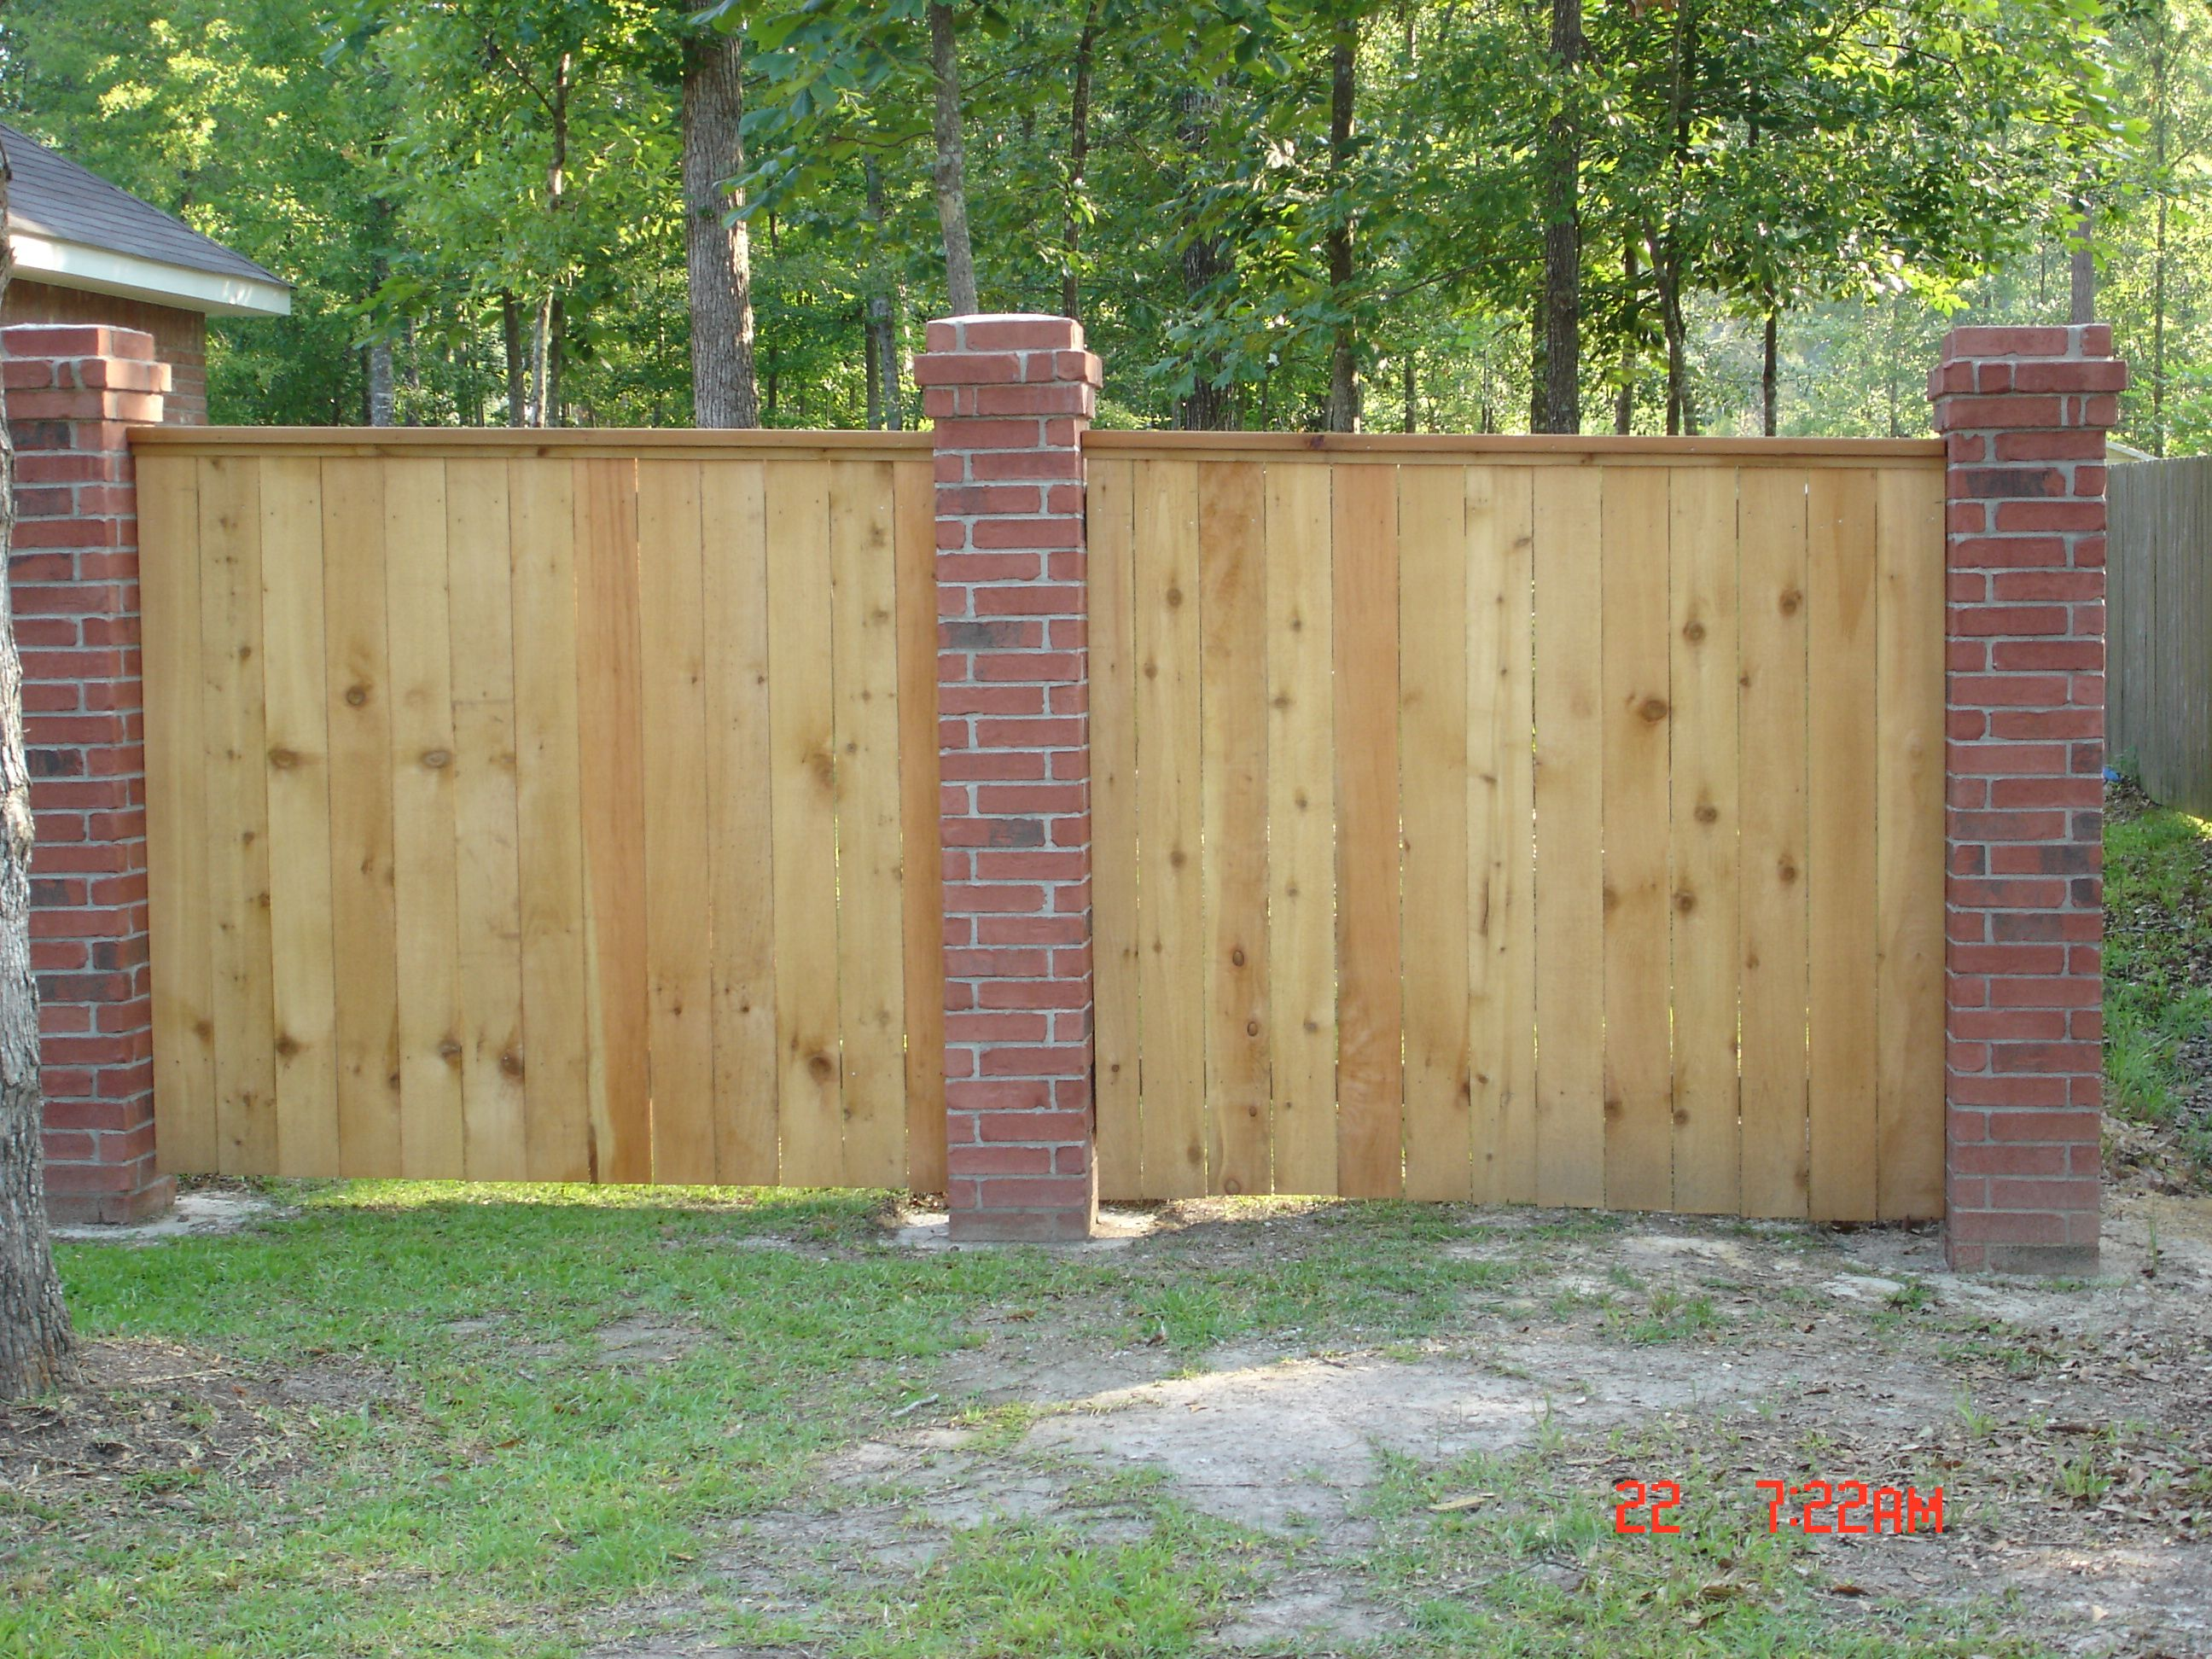 Brick Columns with Wood Fence | Brick columns, Brick fence ...